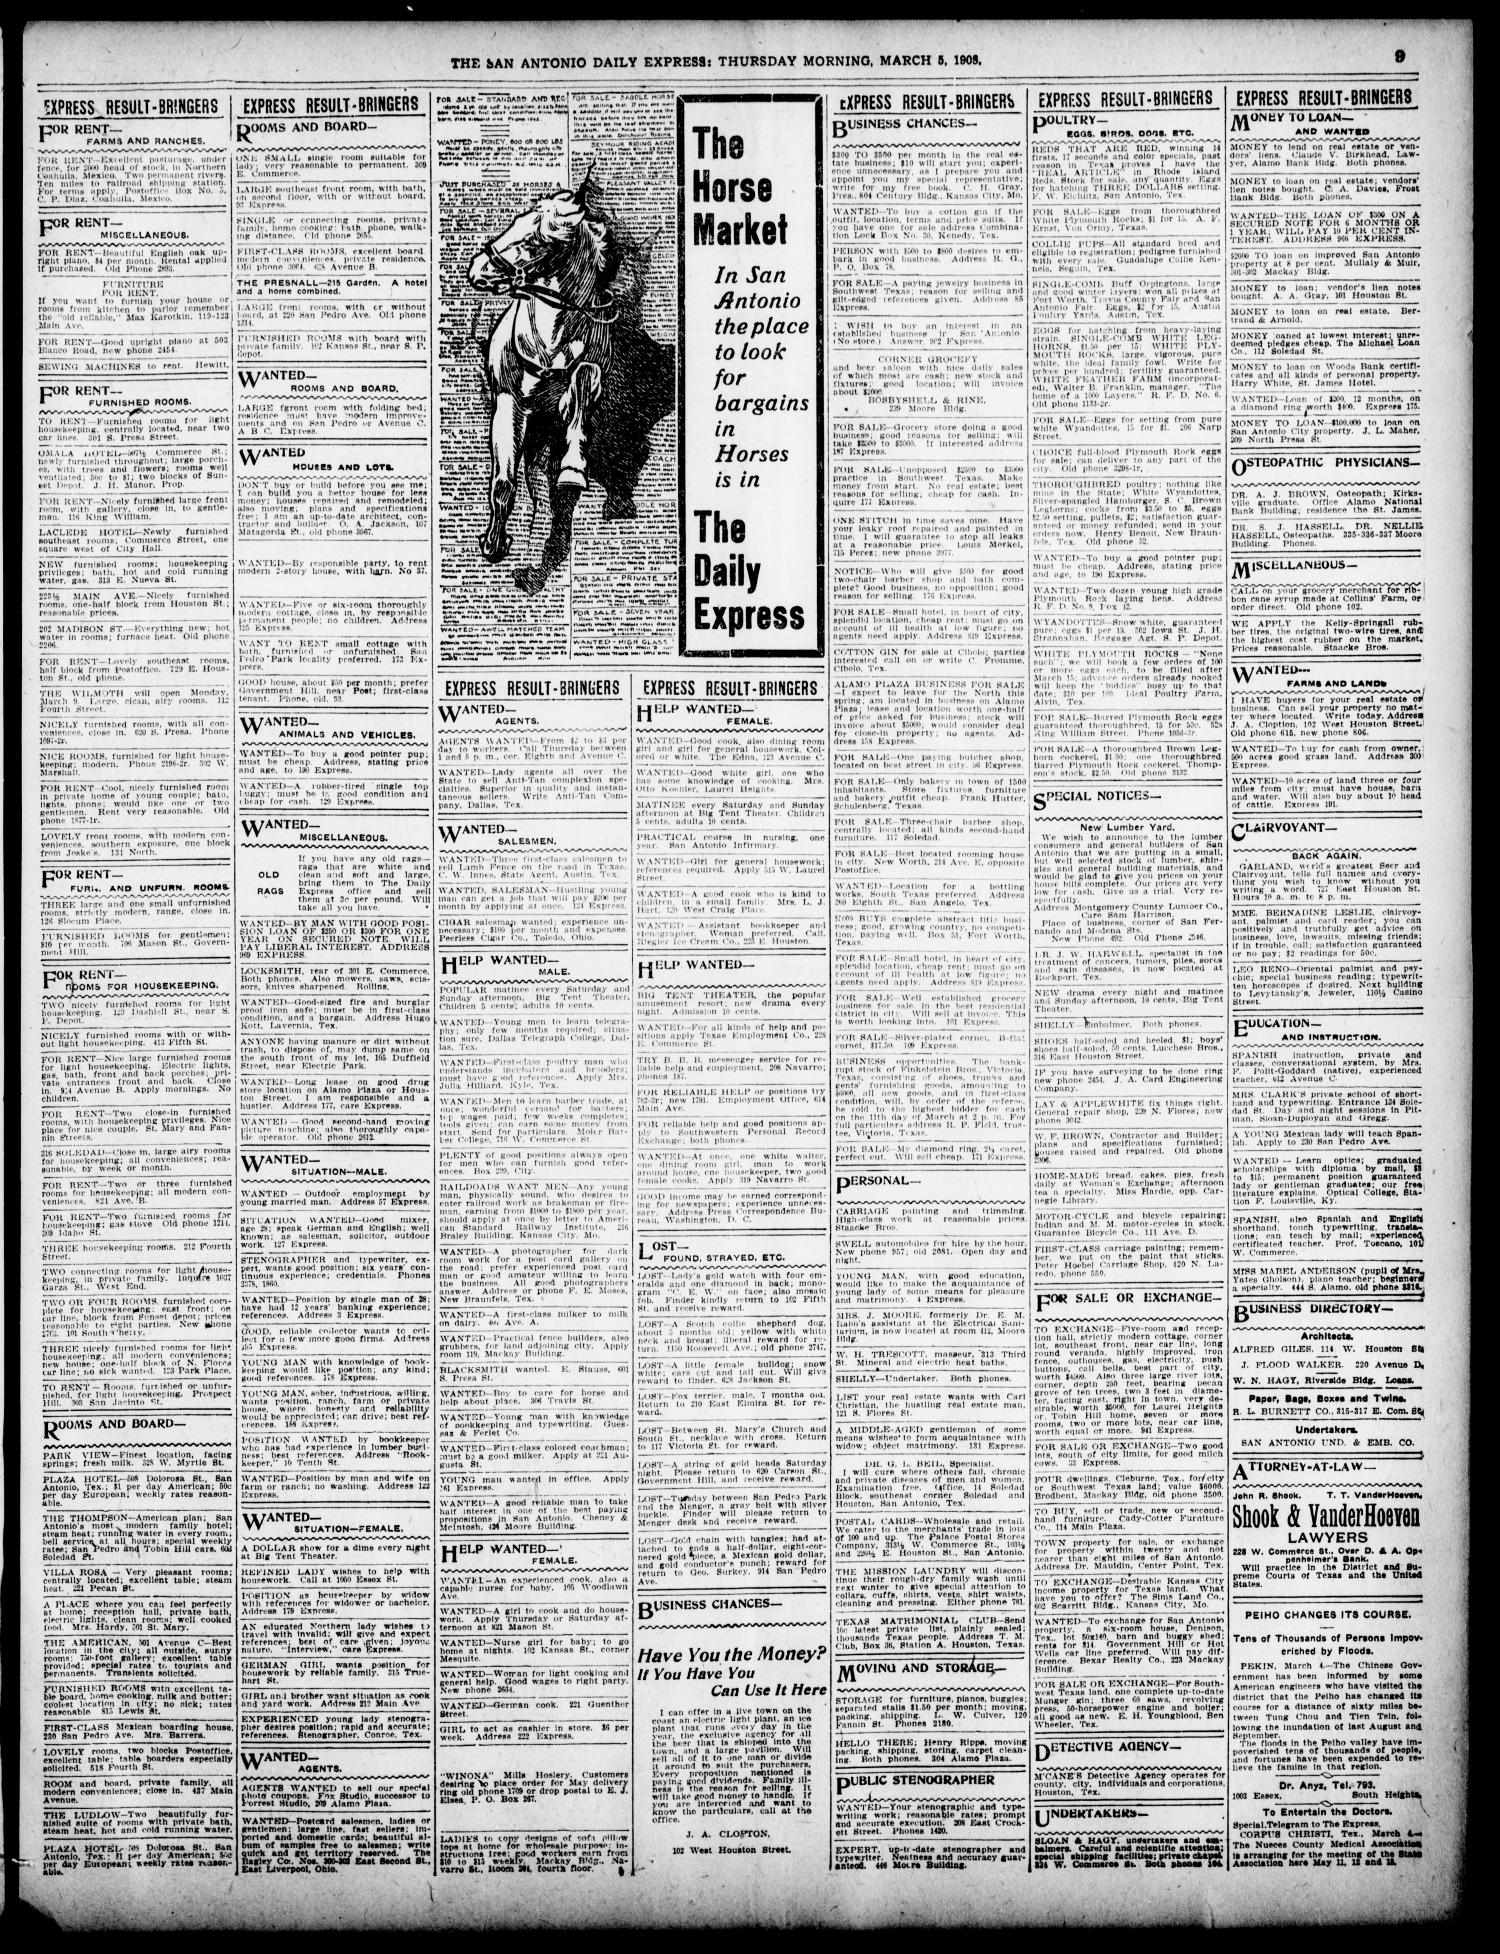 The Daily Express. (San Antonio, Tex.), Vol. 43, No. 65, Ed. 1 Thursday, March 5, 1908 - Page 9 of 12 - The Portal to Texas History